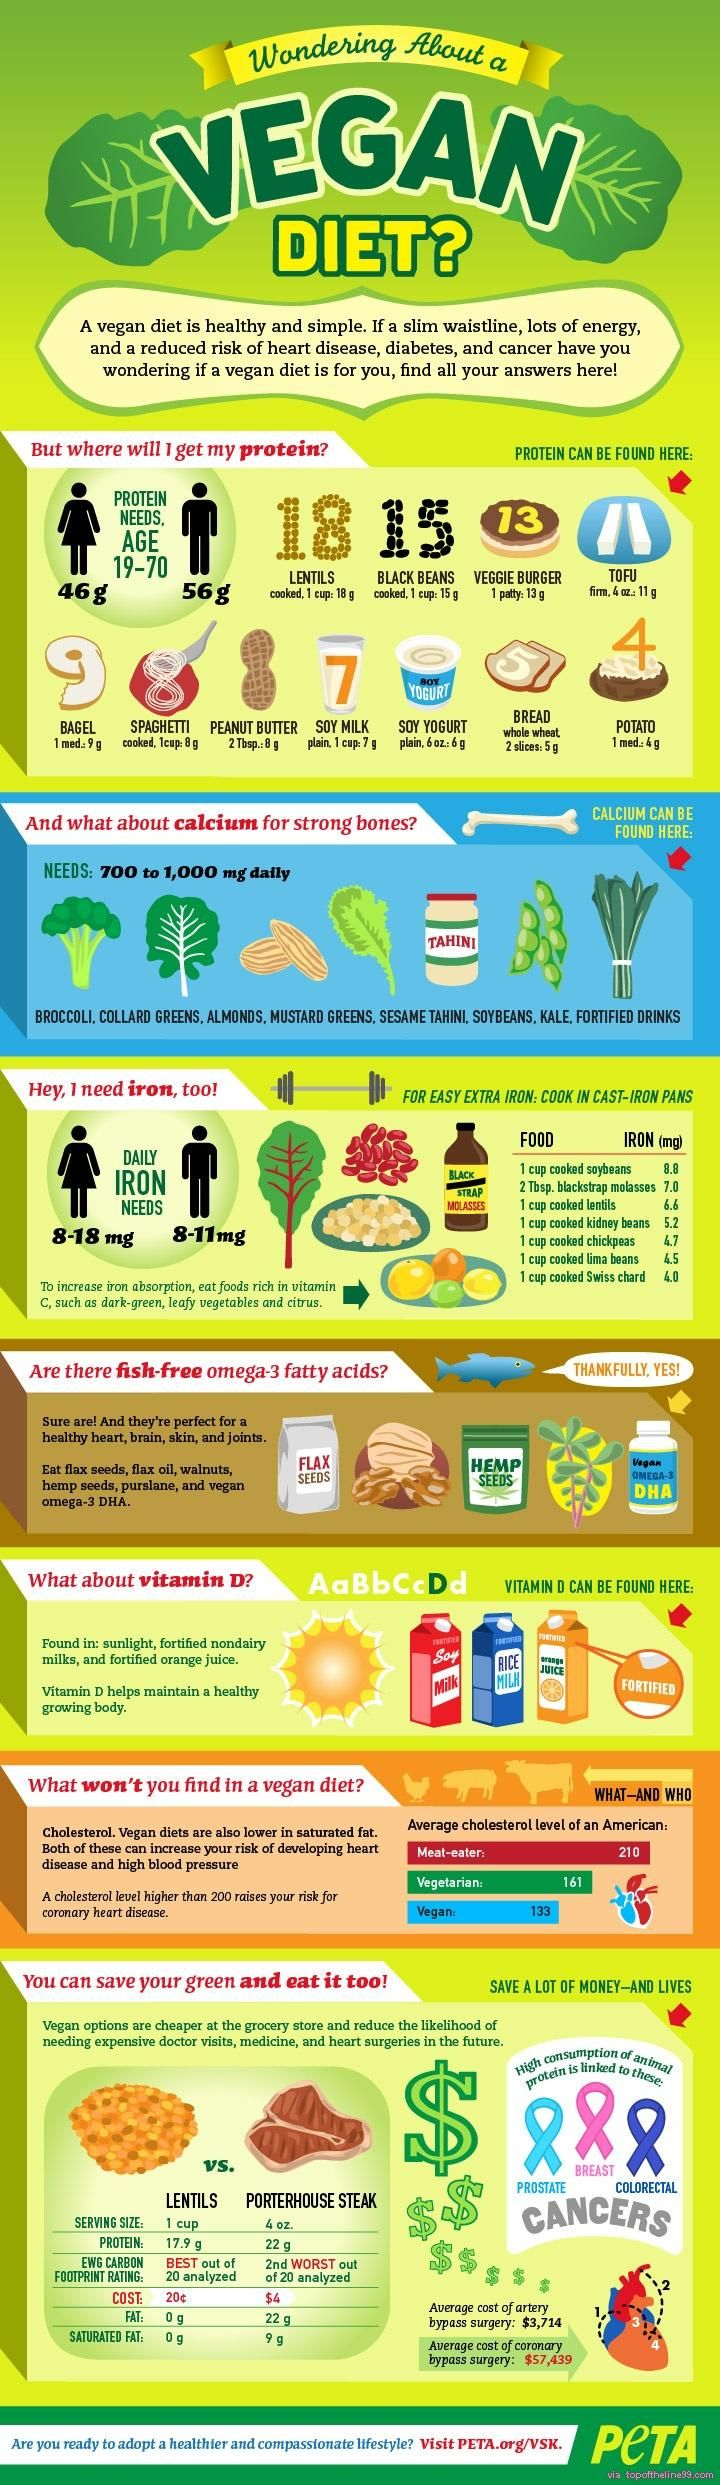 Not that I'm vegan, but I found this very interesting. Love the lentil/steak comparison at the bottom. I'm a meat eater, but have cut back to a few serves a week, rather than at dinner every single night. Definitely keen to keep doing this and eventually reduce my overall meat intake to a minimum, substituting foods like chickpeas, lentils and toful for protein.